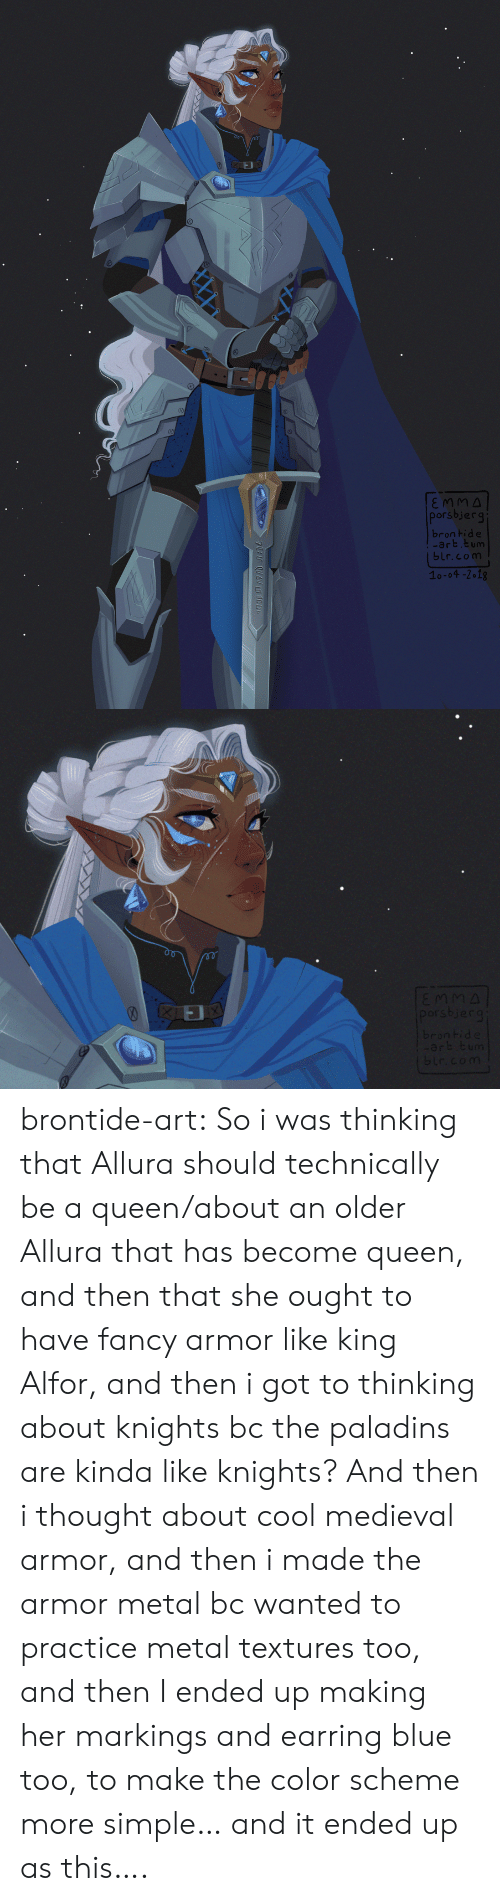 textures: porsbjerg  brontid e  art.tum  blr.com  1o-04 -2 18 brontide-art: So i was thinking that Allura should technically be a queen/about an older Allura that has become queen, and then that she ought to have fancy armor like king Alfor, and then i got to thinking about knights bc the paladins are kinda like knights? And then i thought about cool medieval armor, and then i made the armor metal bc  wanted to practice metal textures too, and then I ended up making her markings and earring blue too, to make the color scheme more simple… and it ended up as this….